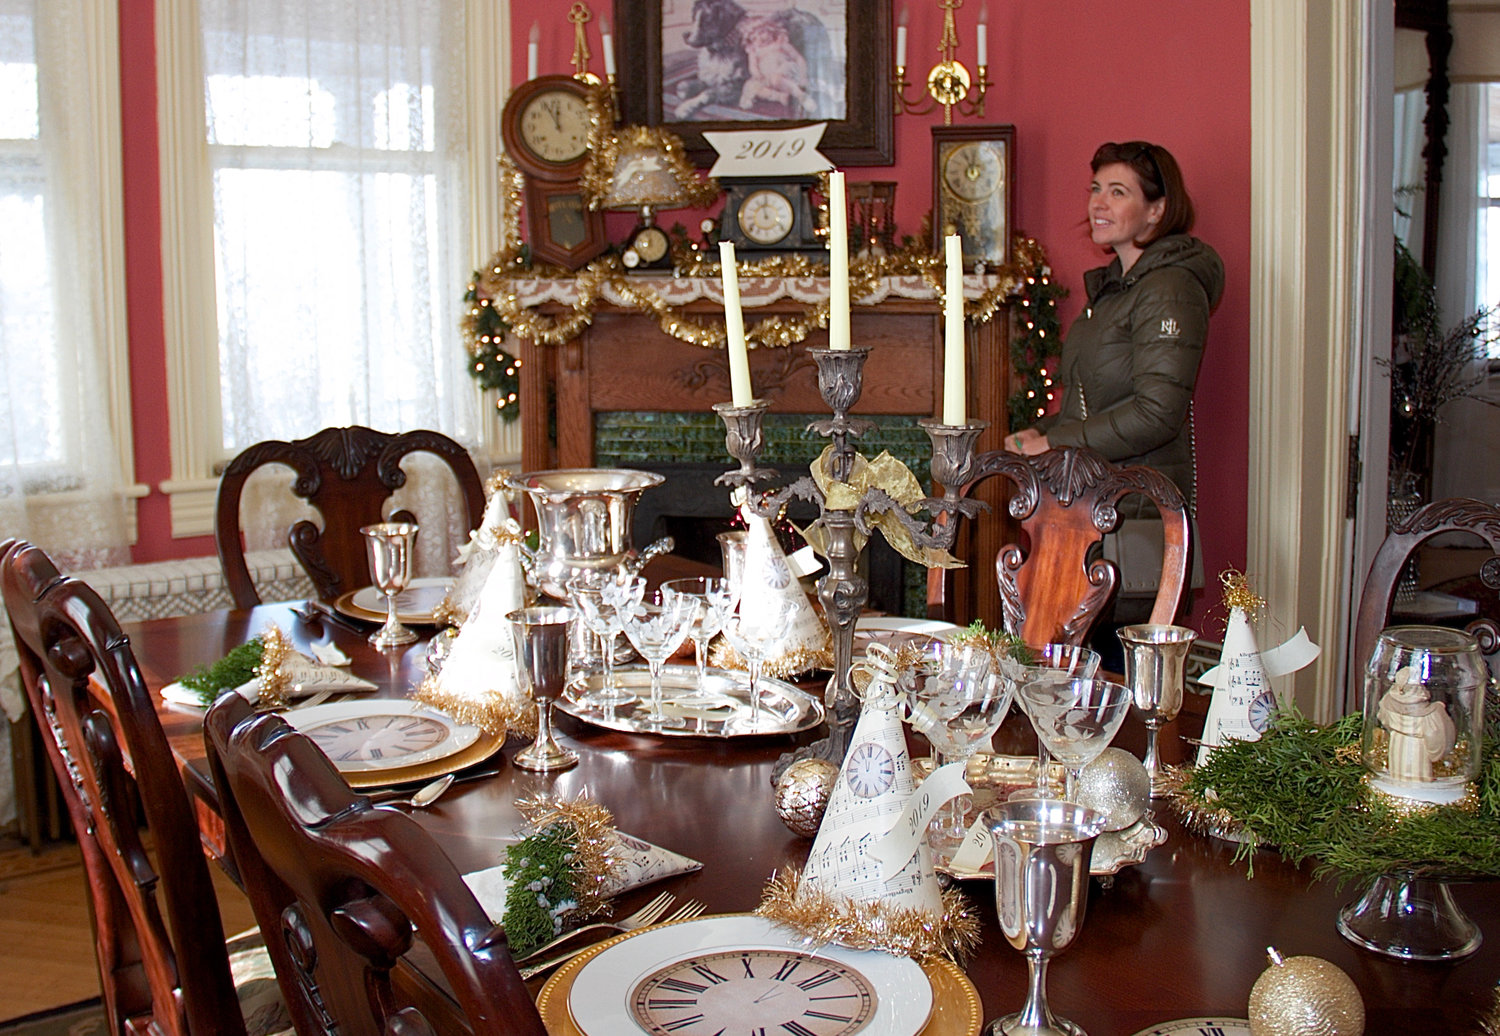 Christine Martino admired the New Year décor in the dining room of resident Peggie Como's home.